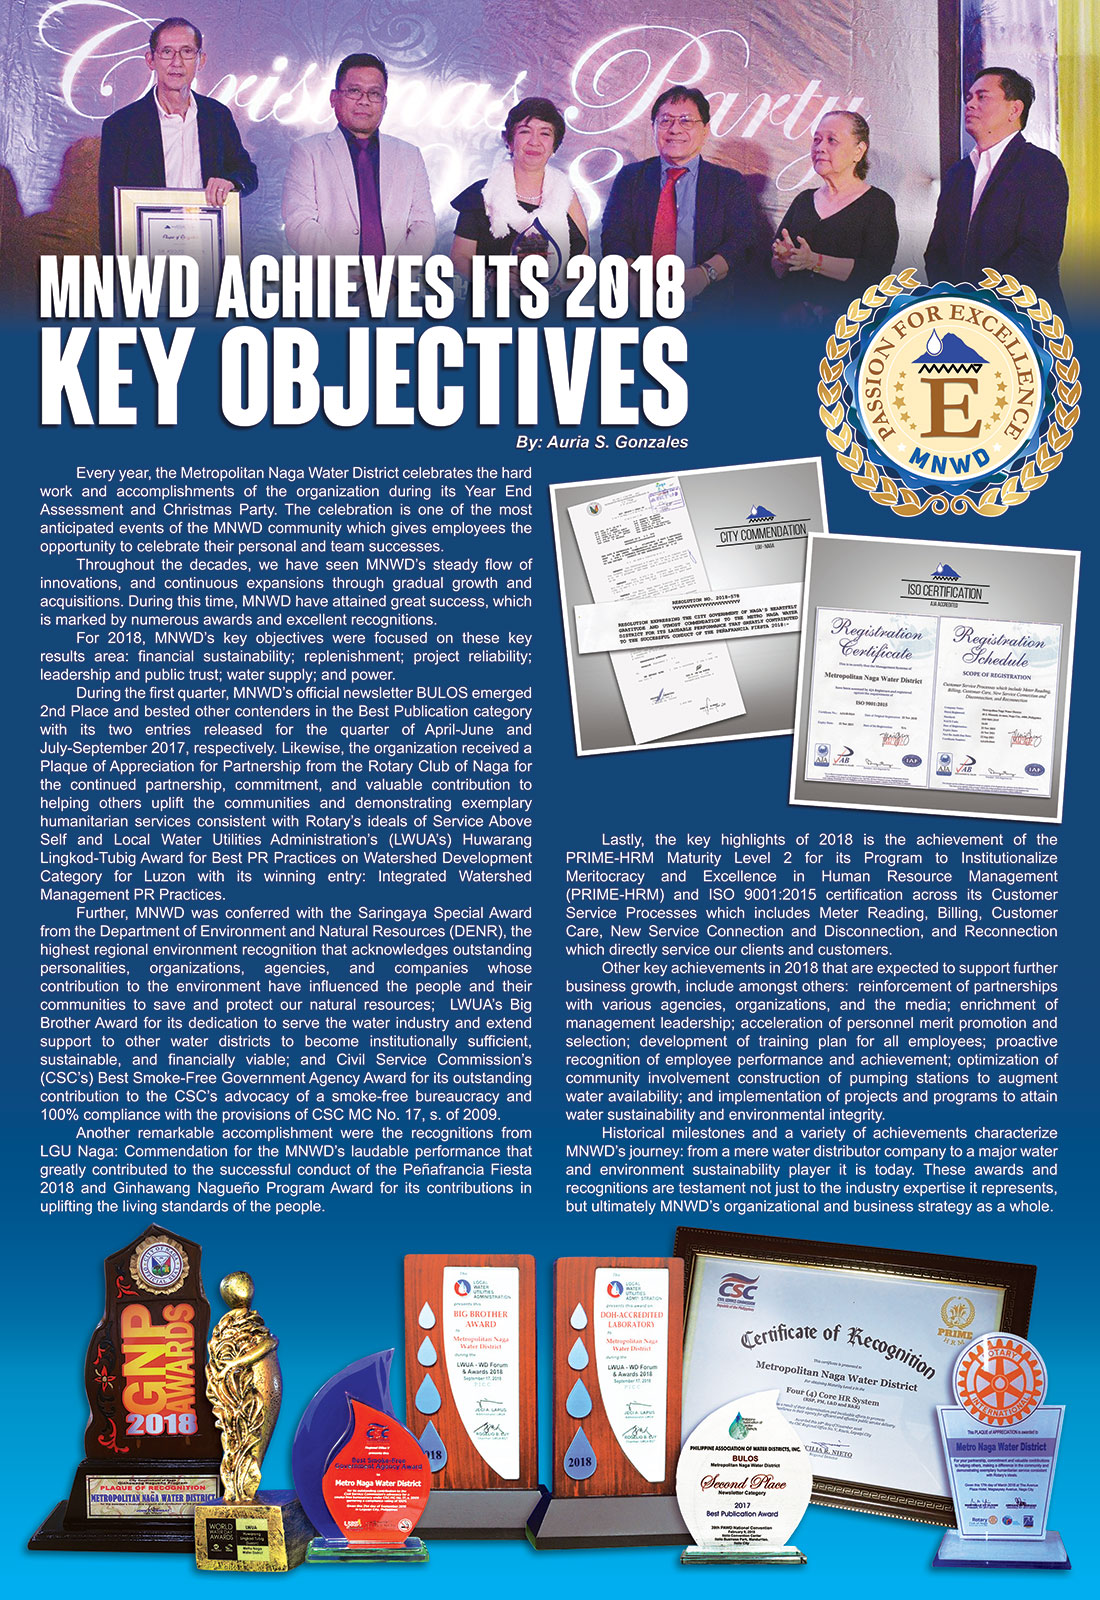 MNWD-Achieves-Its-2018-Key-Objectives